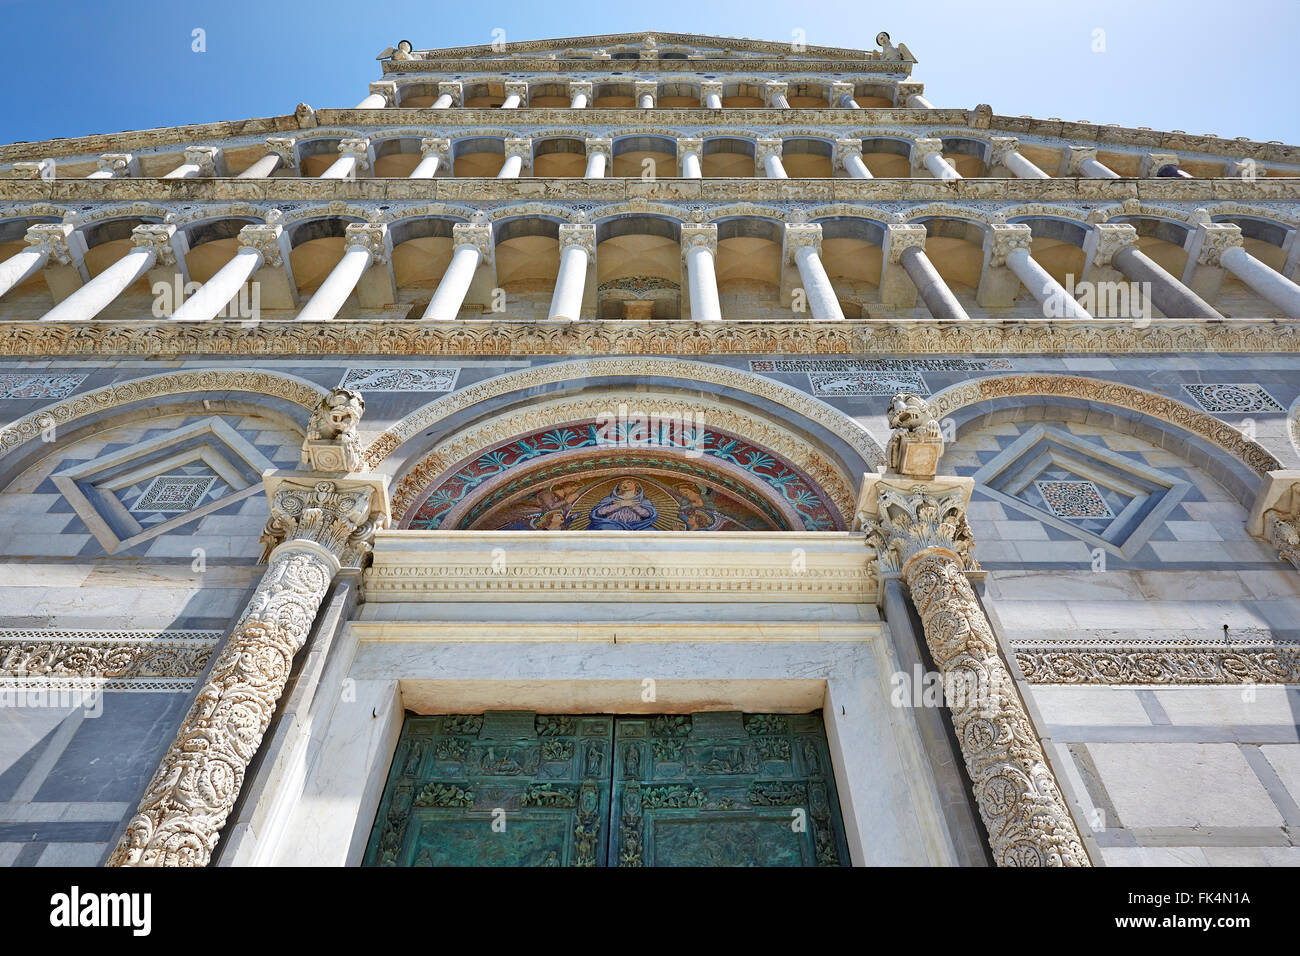 ITALY PISA ARCHITECTURE ARCHITECTURAL DETAIL Stock Photo